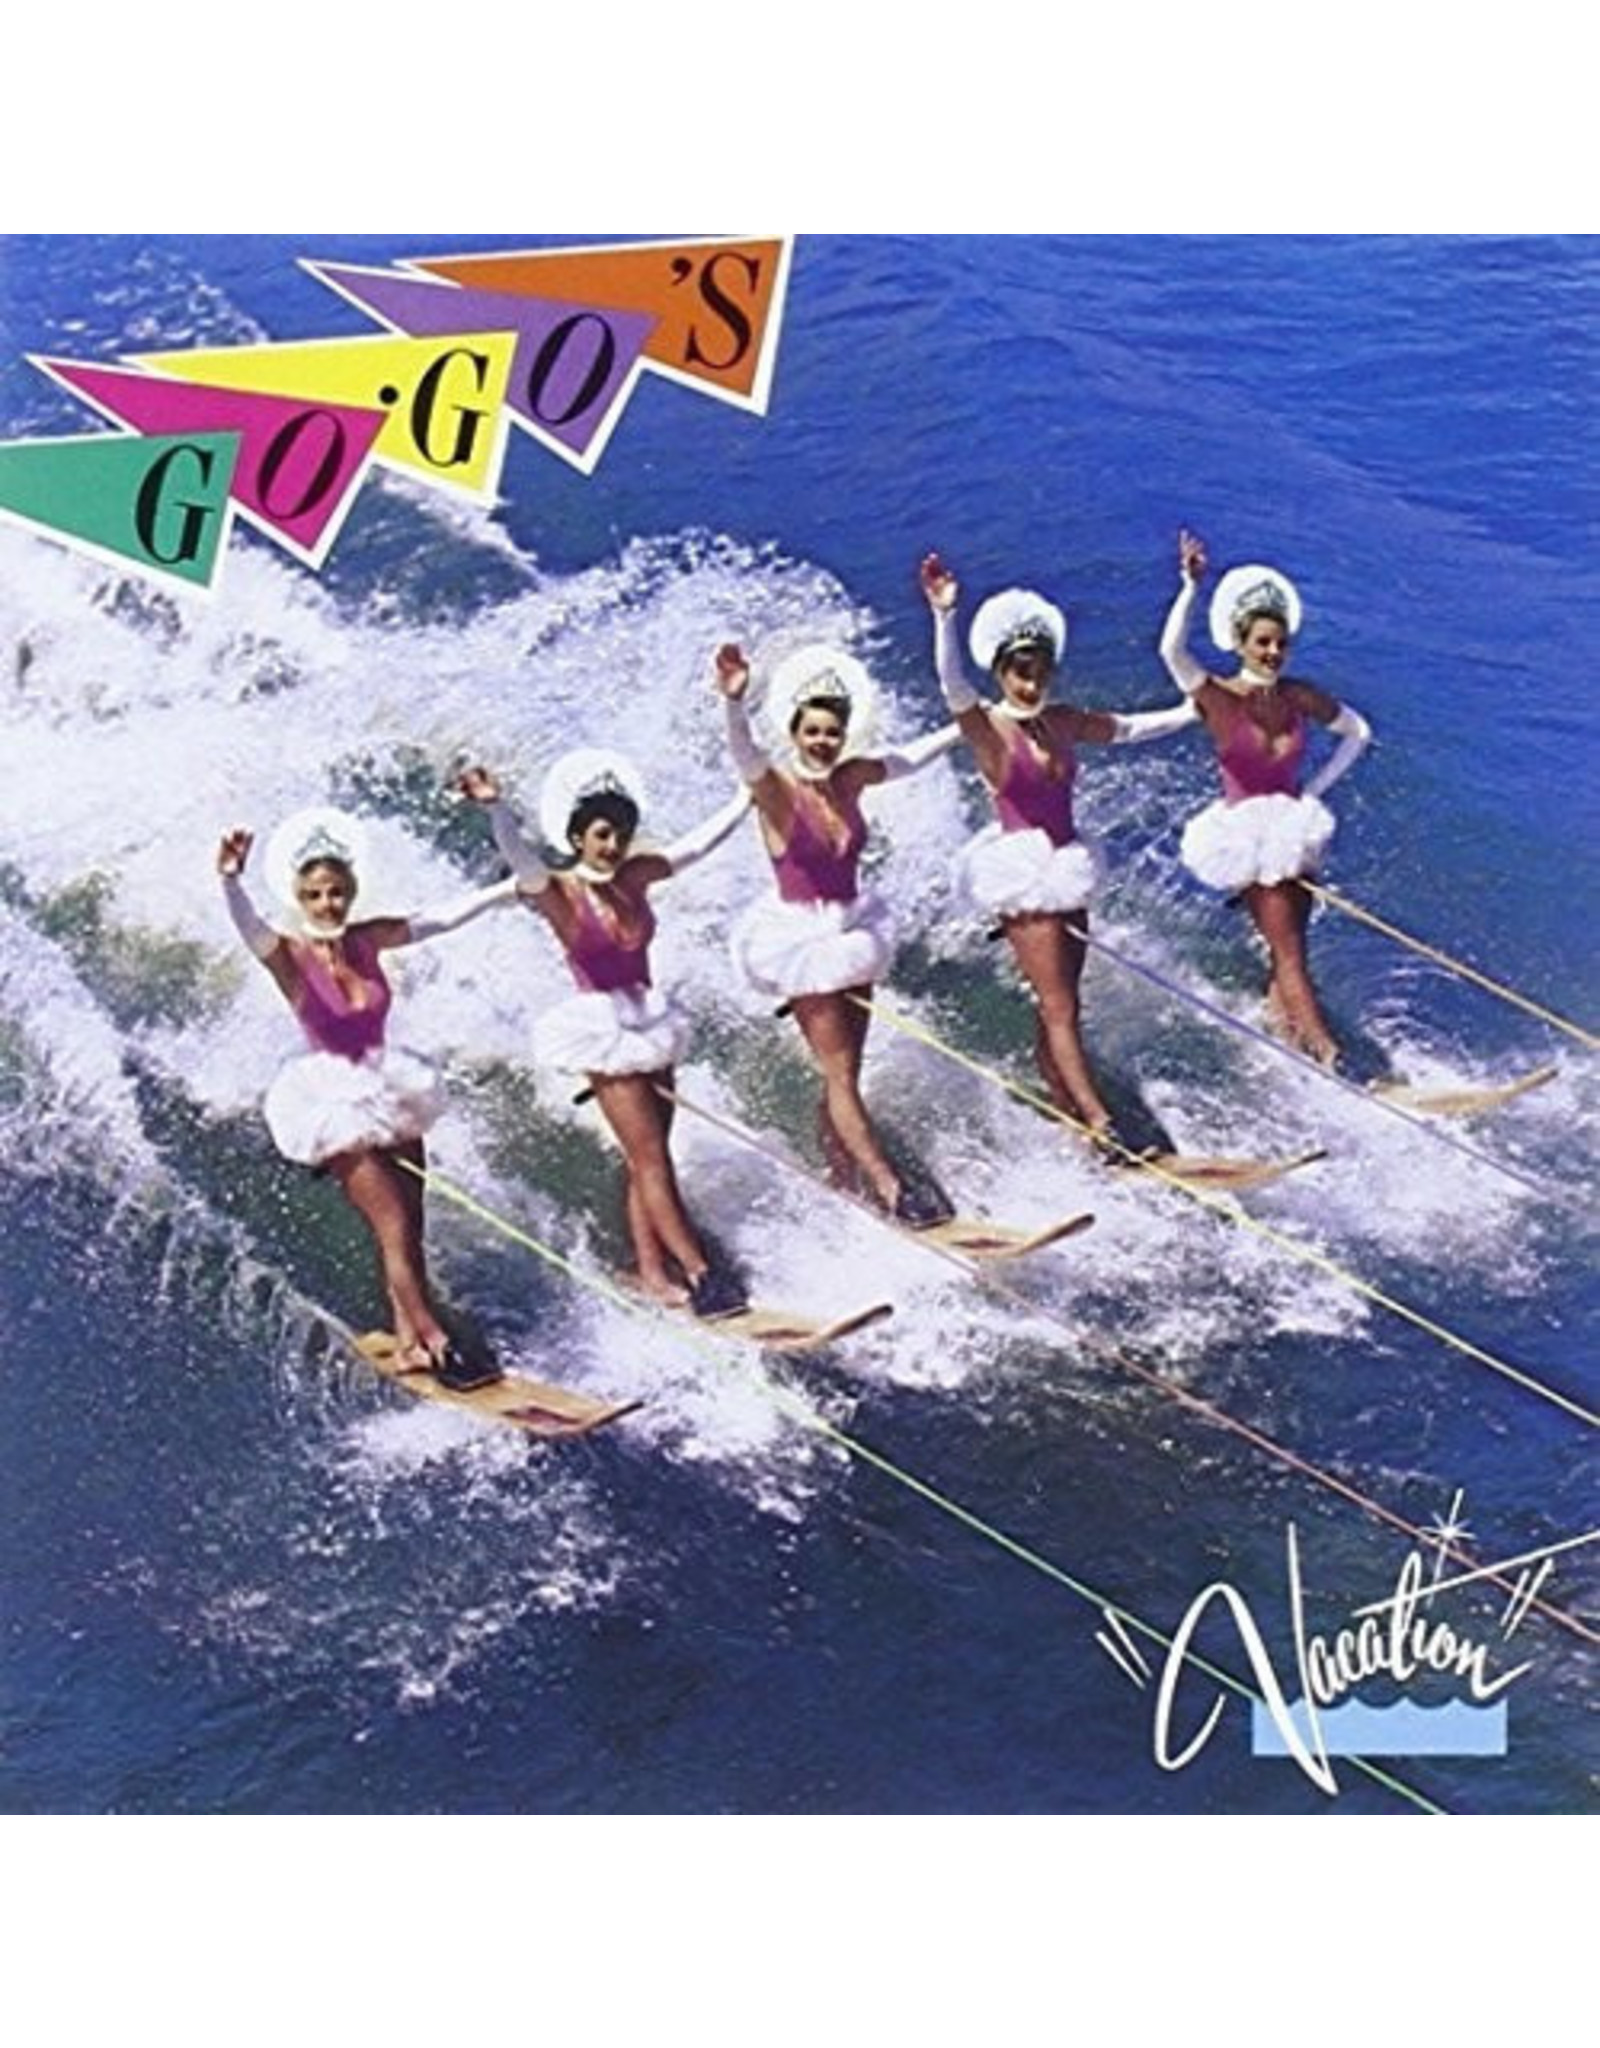 New Vinyl The Go-Go's - Vacation LP